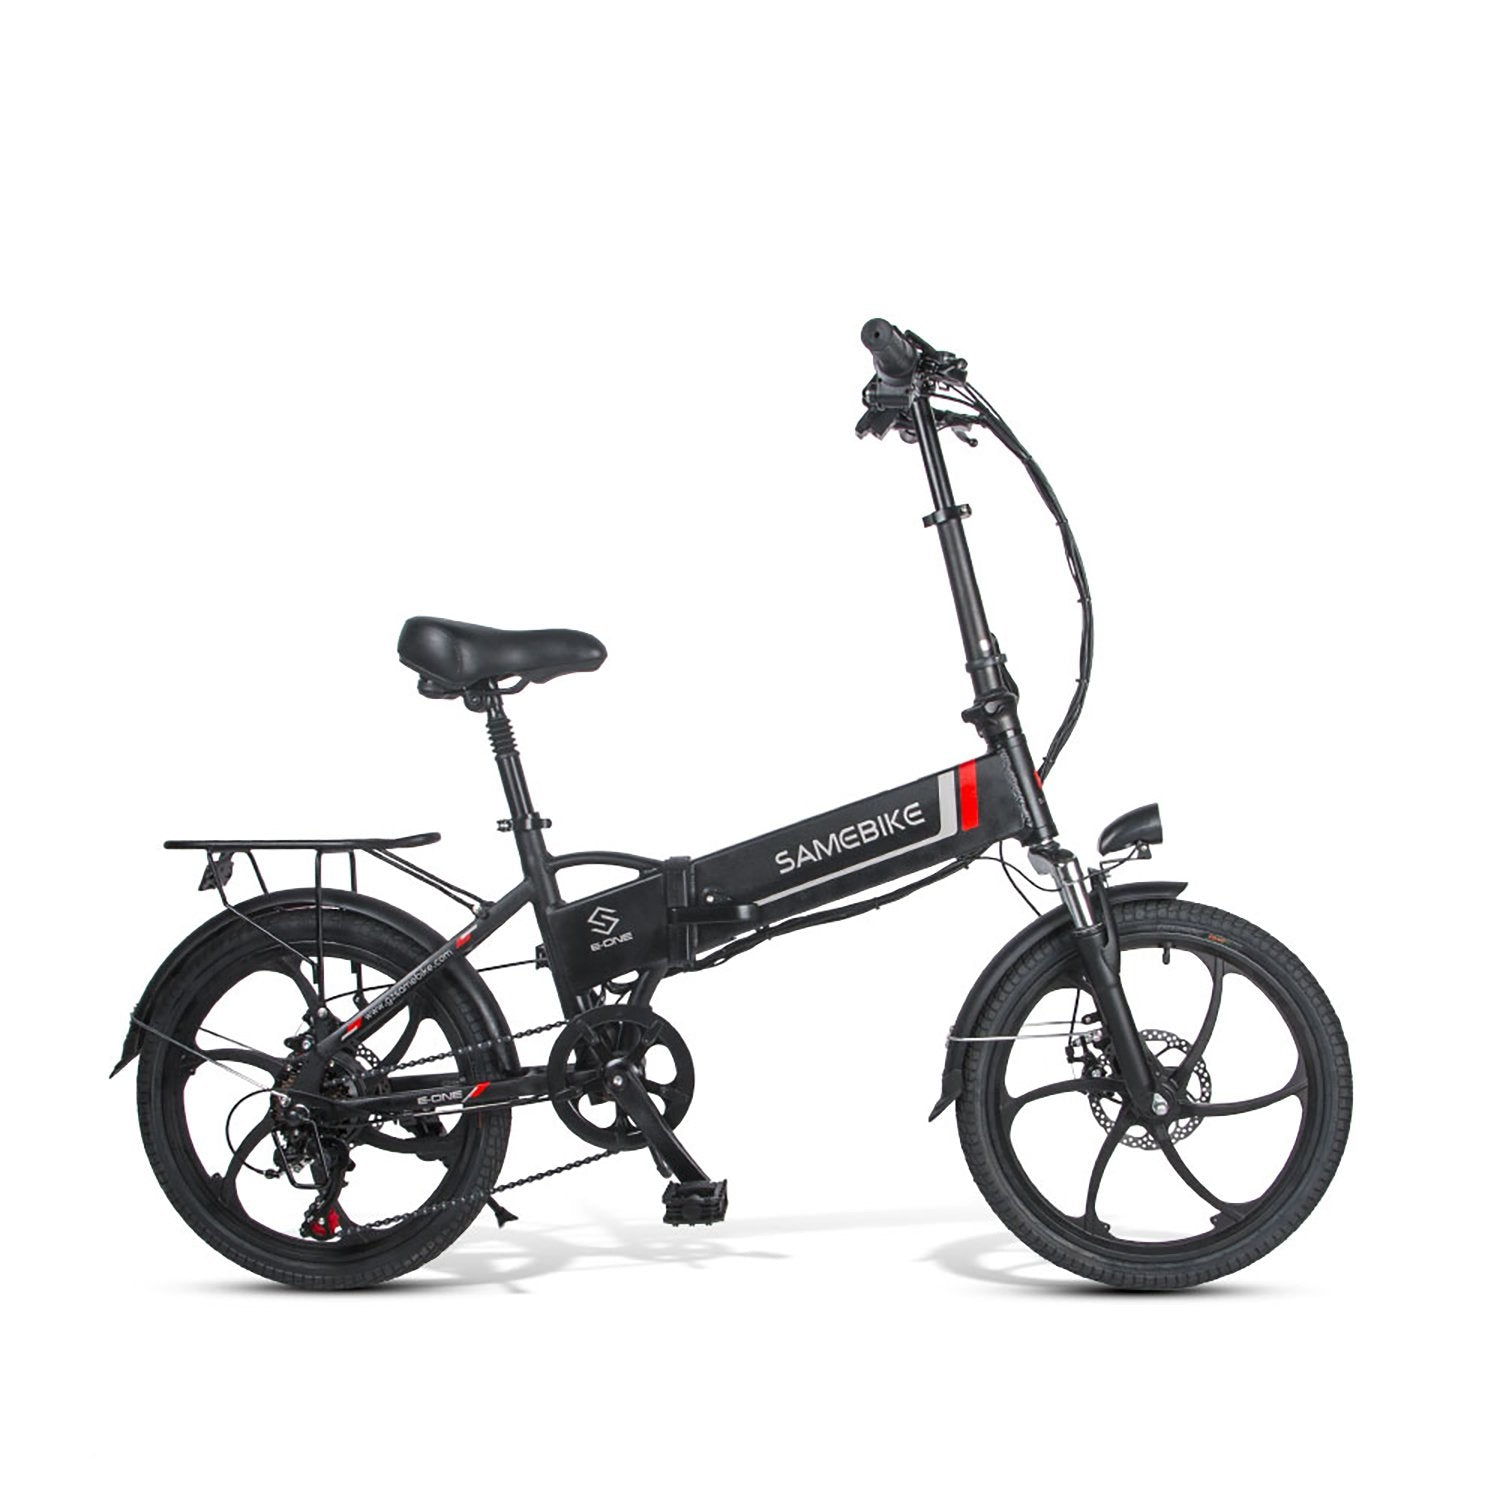 SAMEBIKE 20LVXD30 Folding Electric Bike 20 Inch Tires 350W Motor 10.4Ah Battery Max 35 KPH